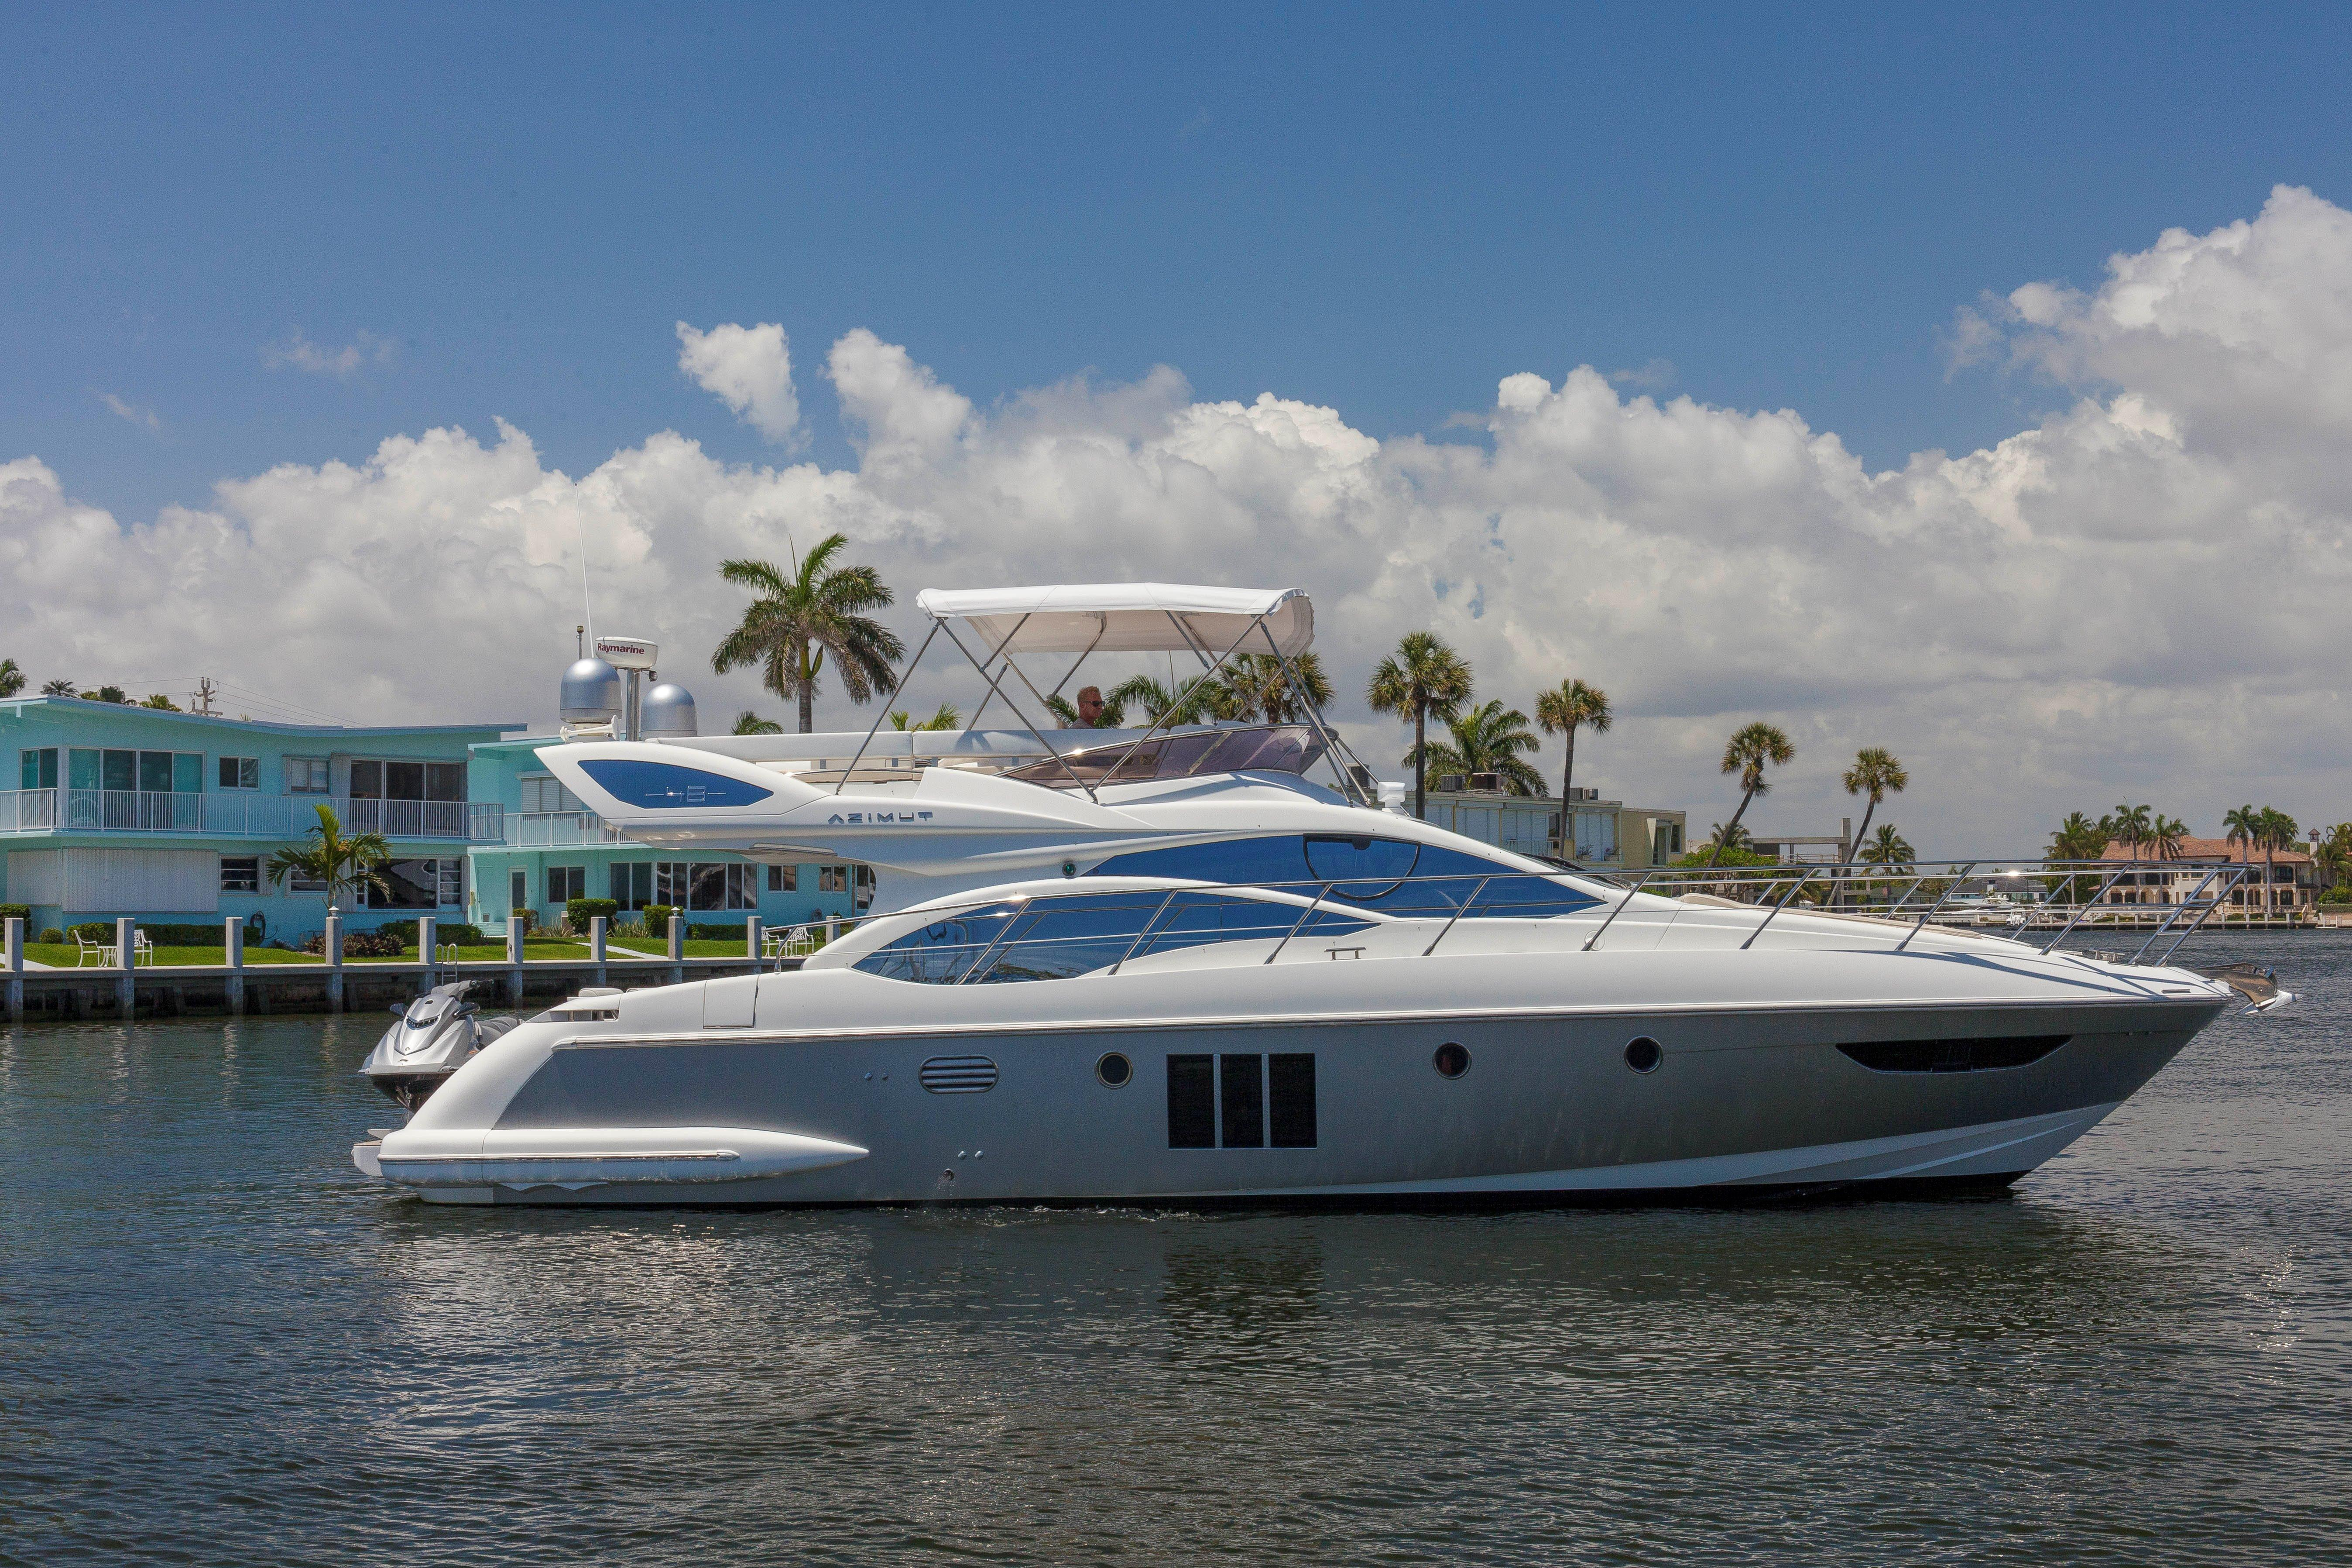 48 azimut 2013 for sale in fort lauderdale florida us for Ocean yachts 48 motor yacht for sale